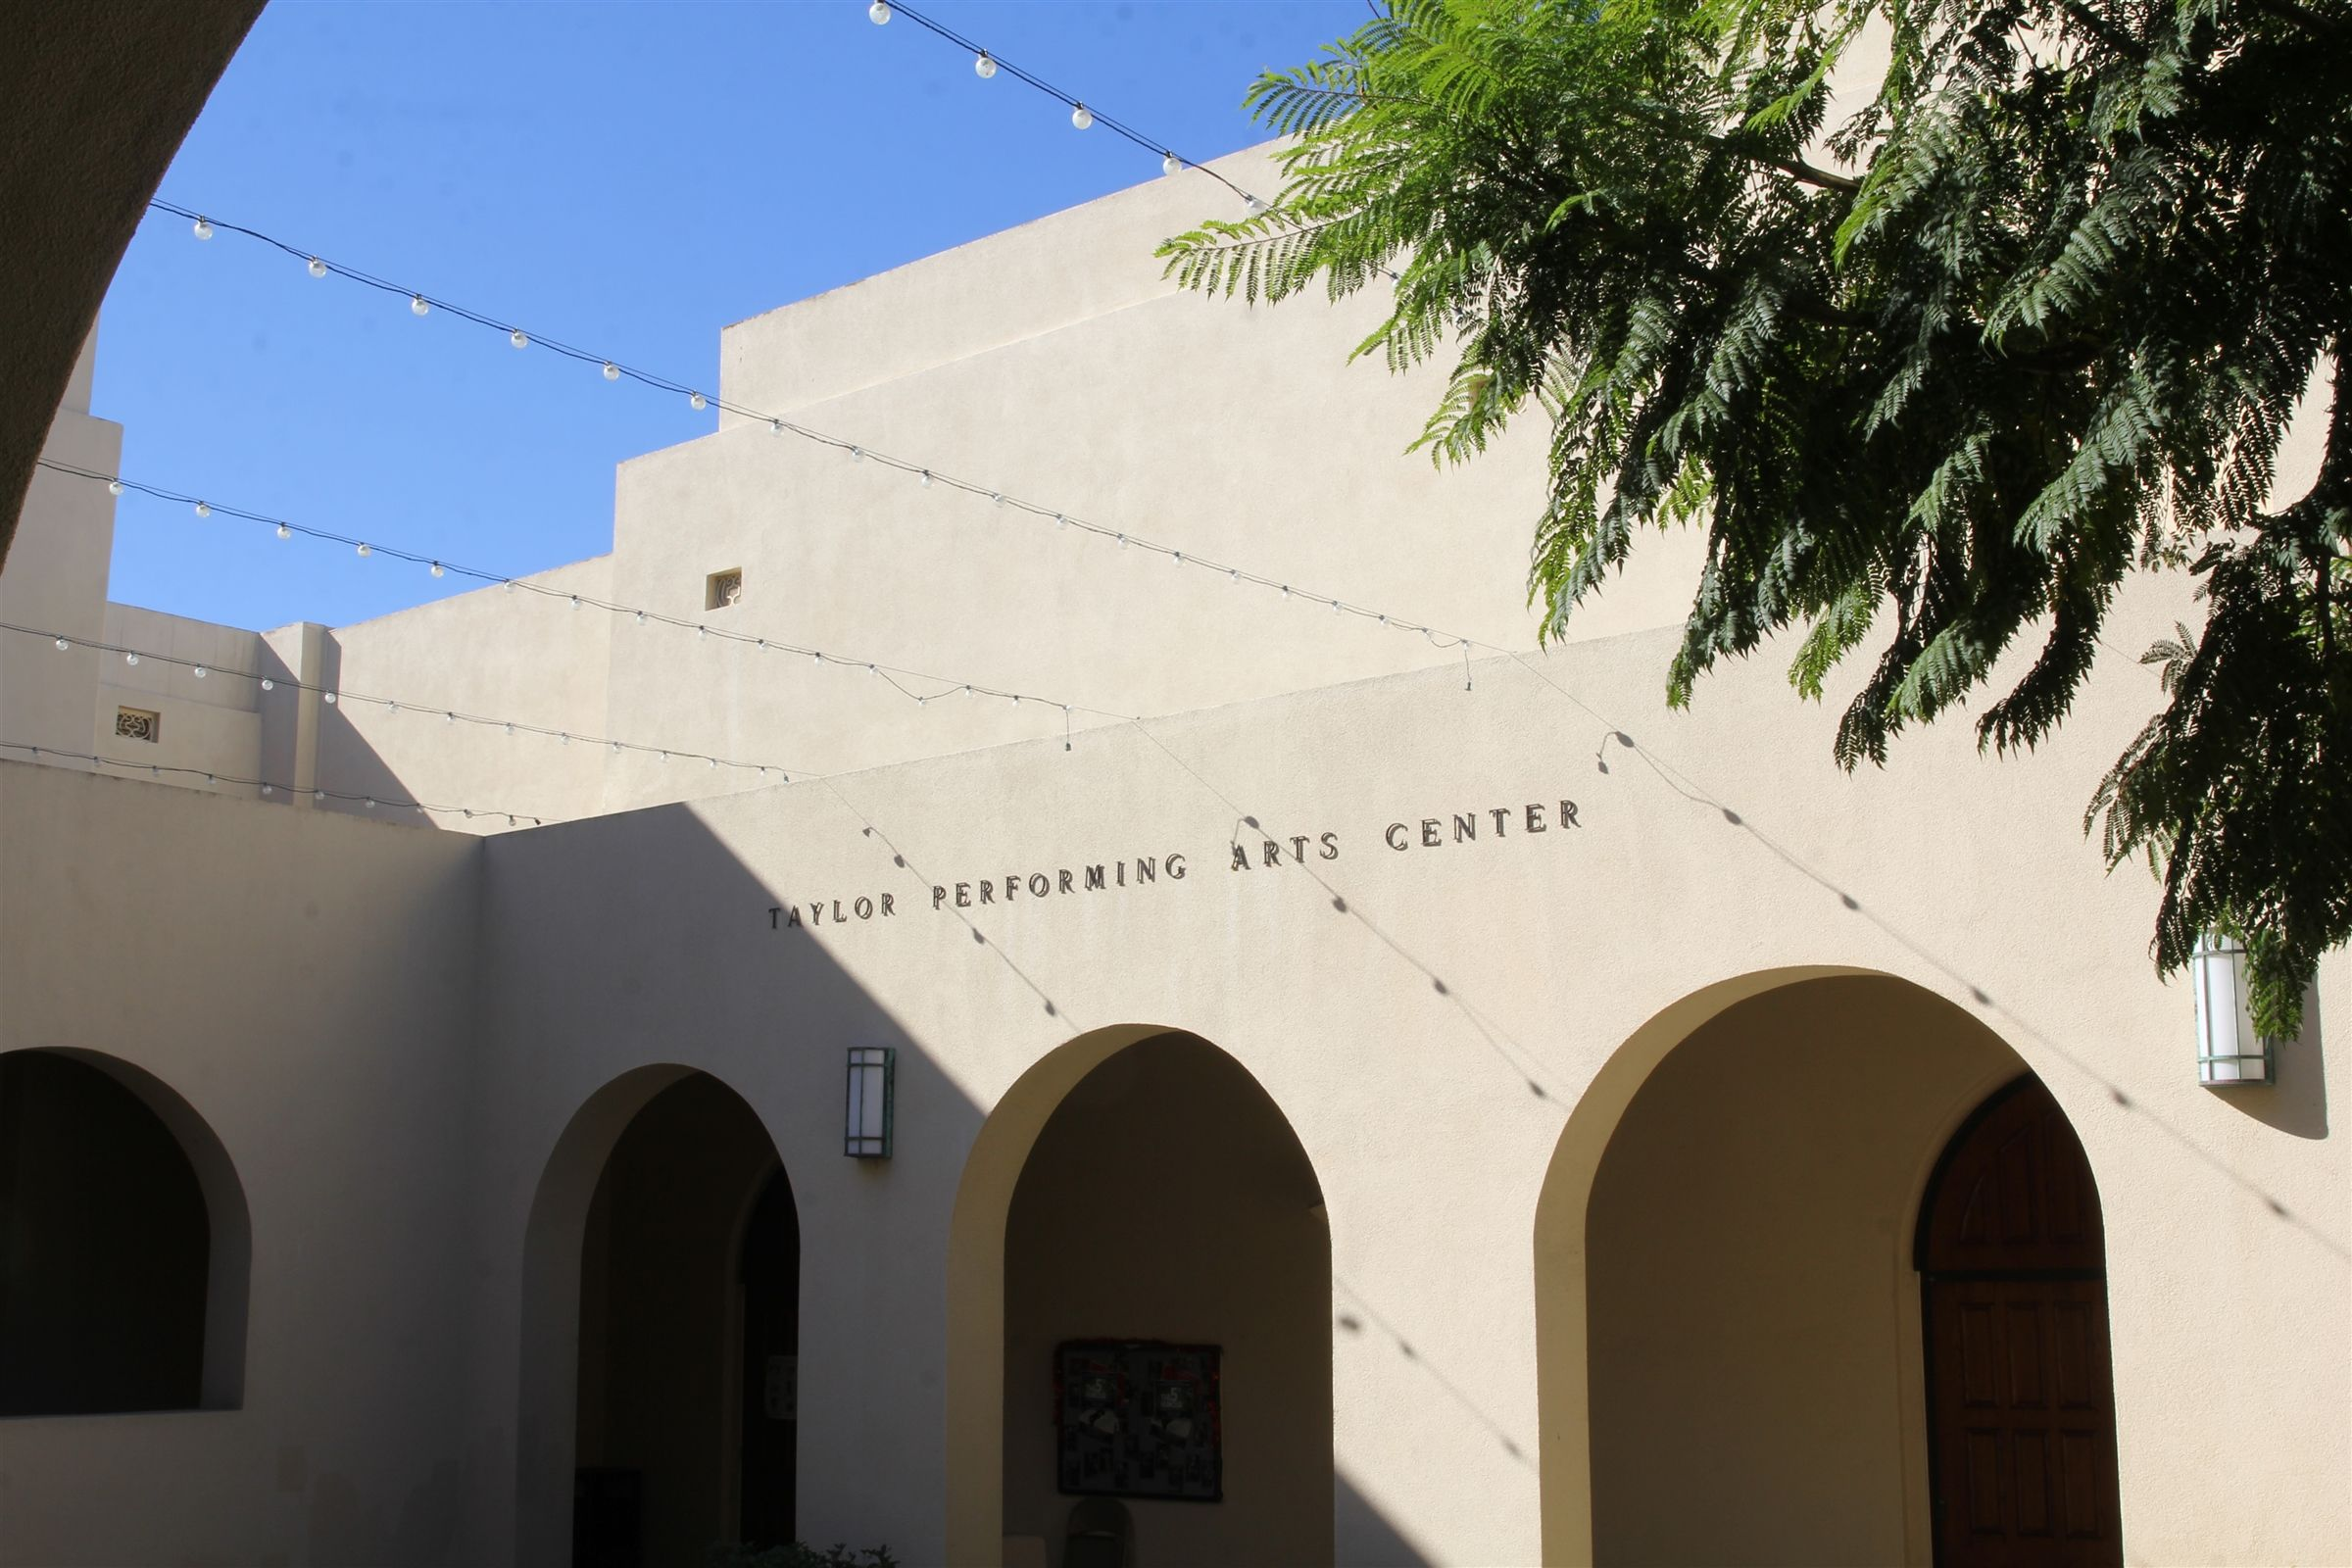 Taylor Performing Arts Center